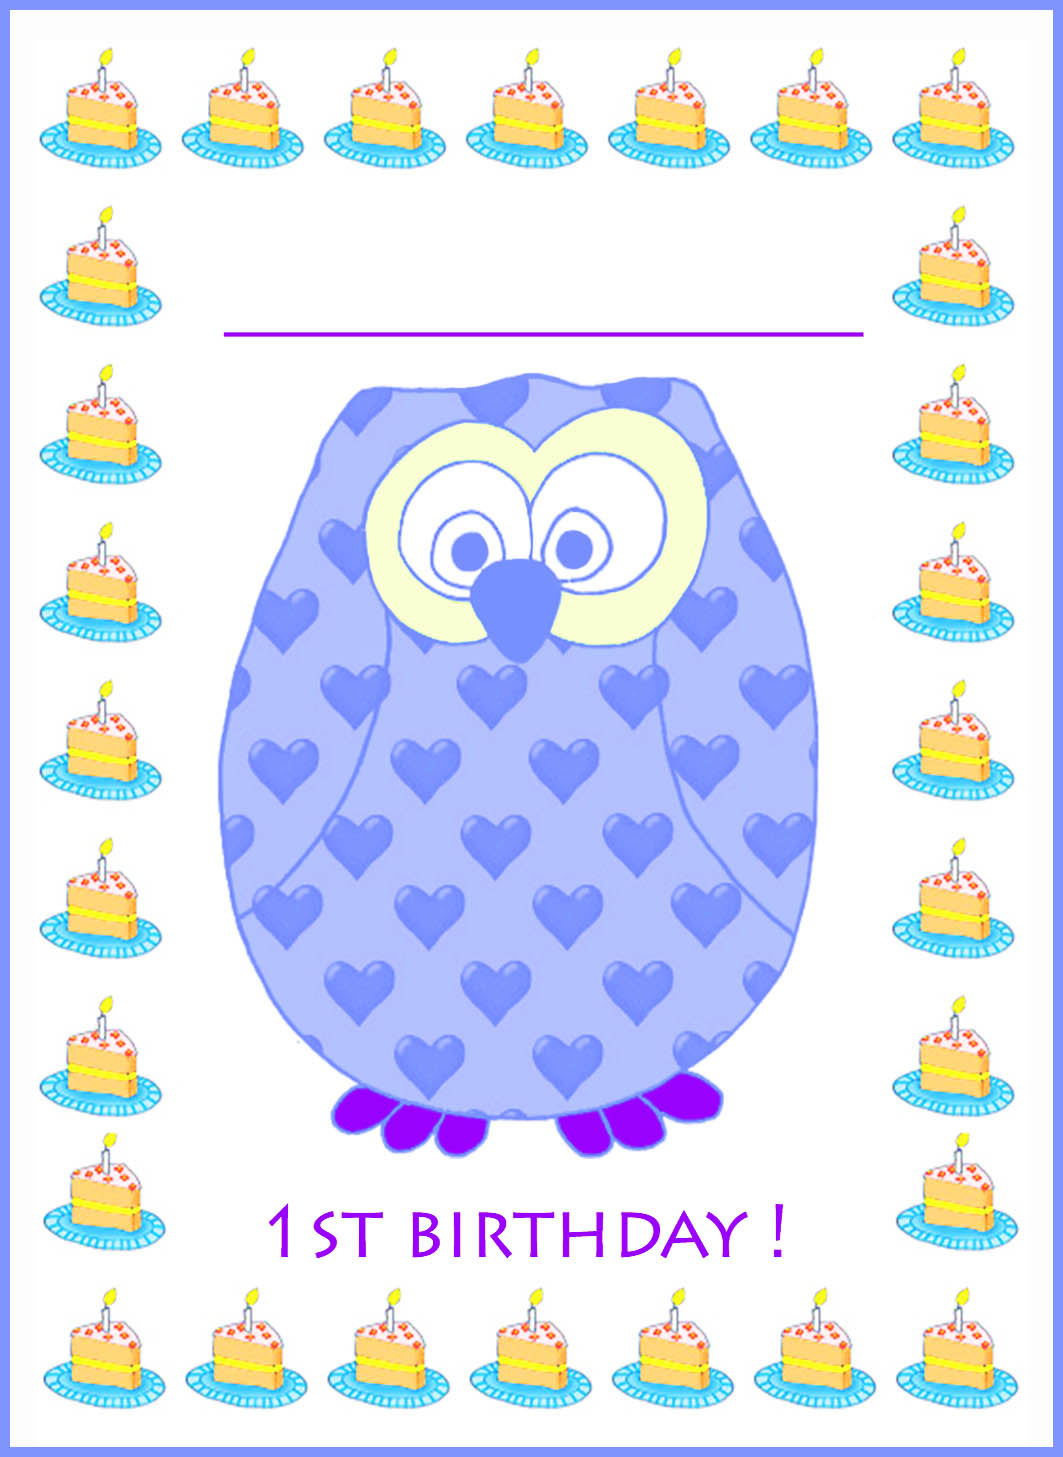 1st birthday card blue